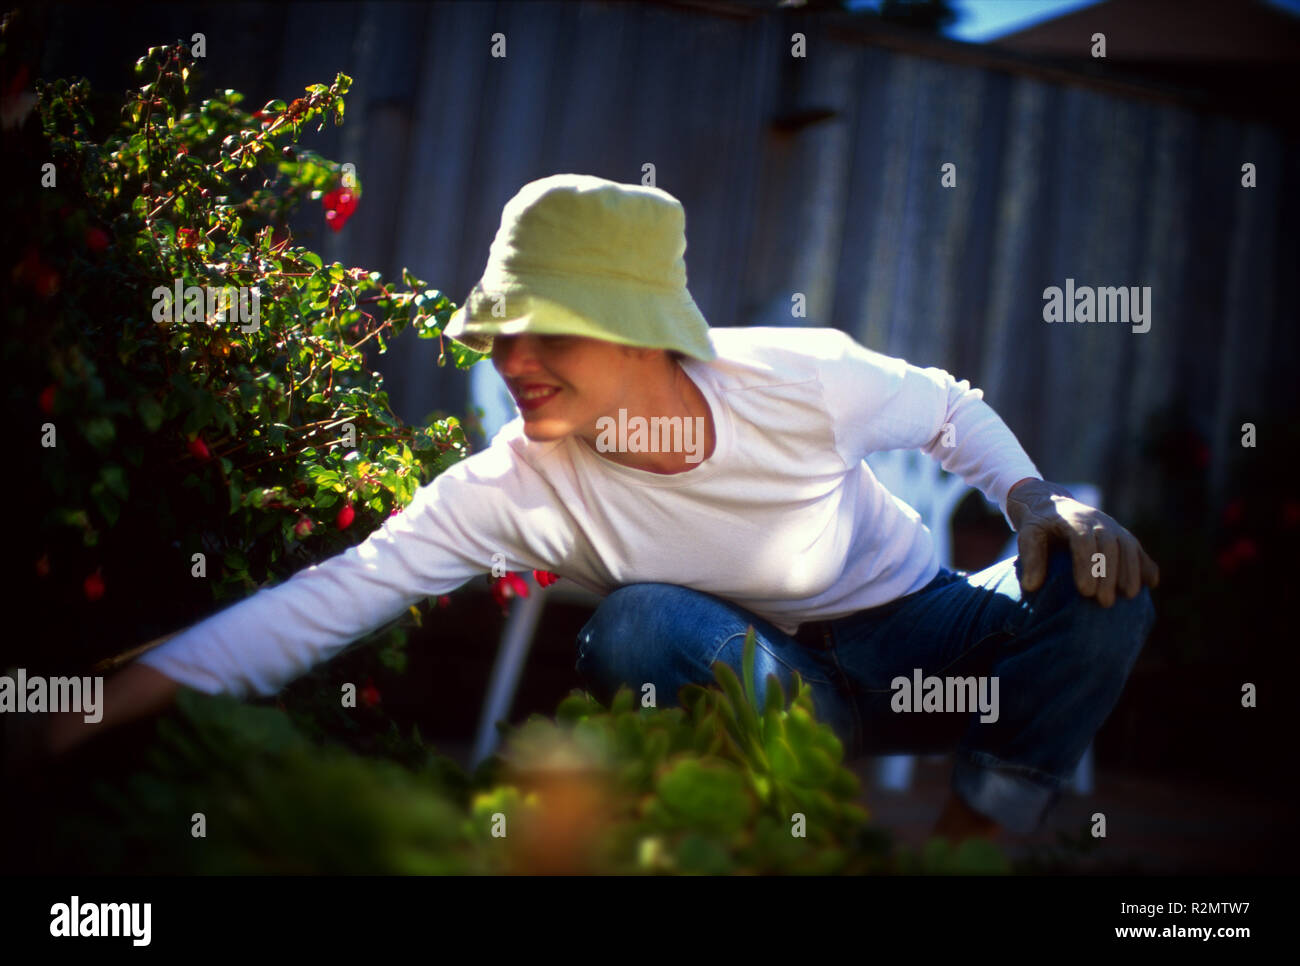 Laurie gardening - Stock Image